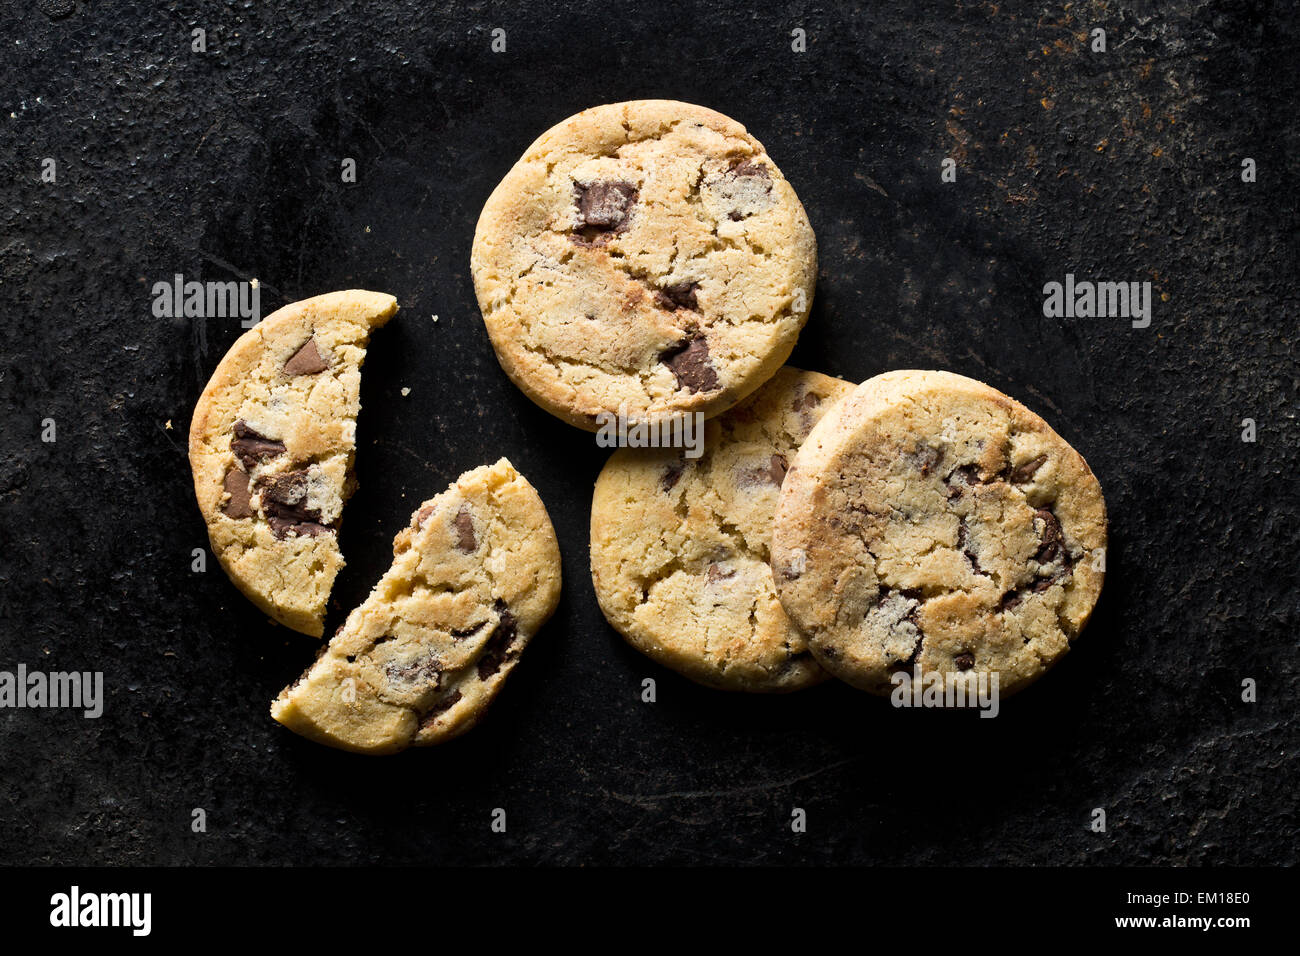 top view of chocolate cookies - Stock Image